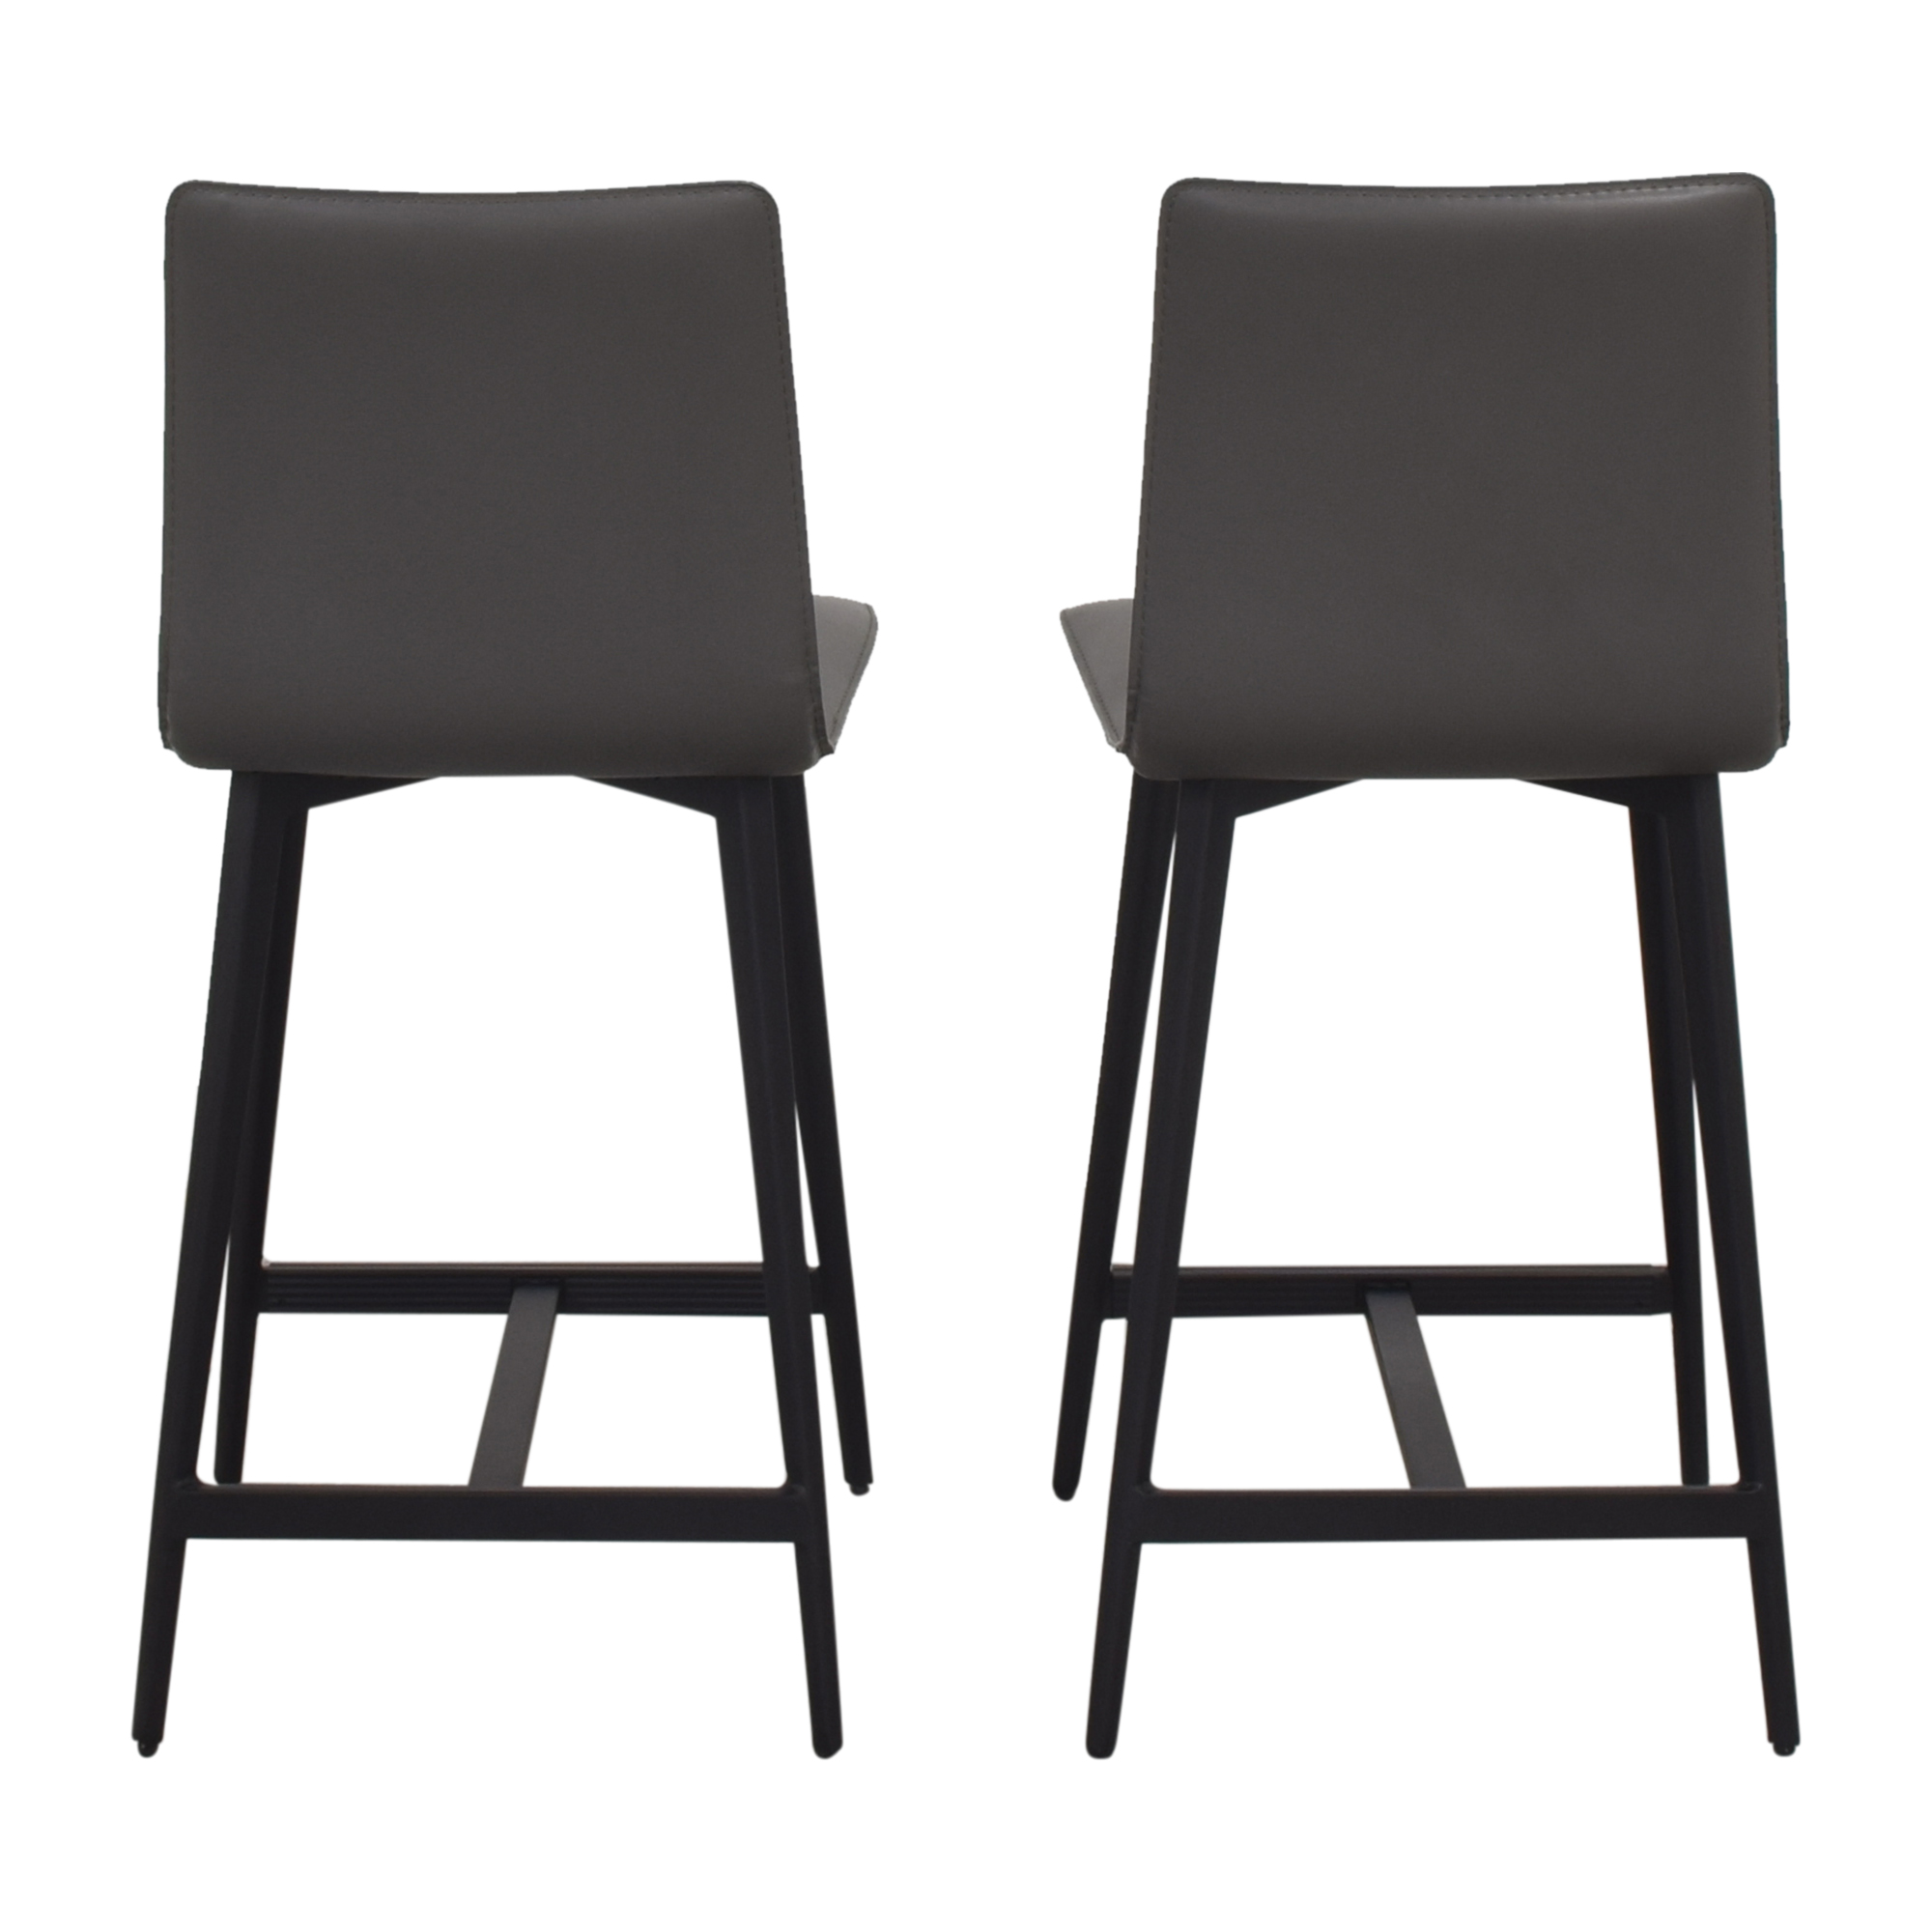 buy Room & Board Hirsch Counter Stool Room & Board Chairs